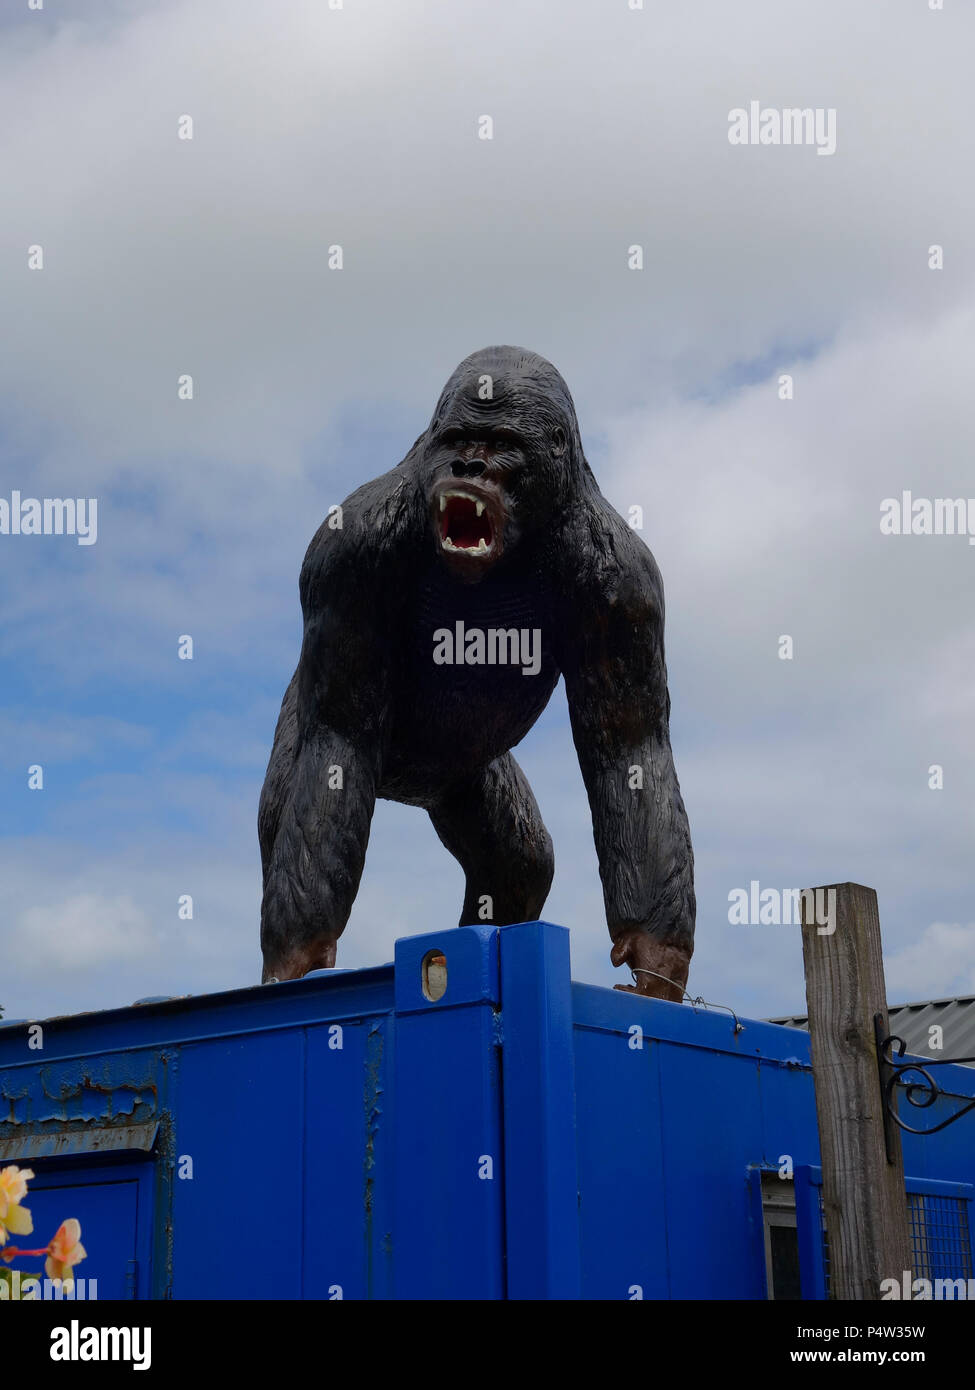 snarling gorilla on a container statue - Stock Image